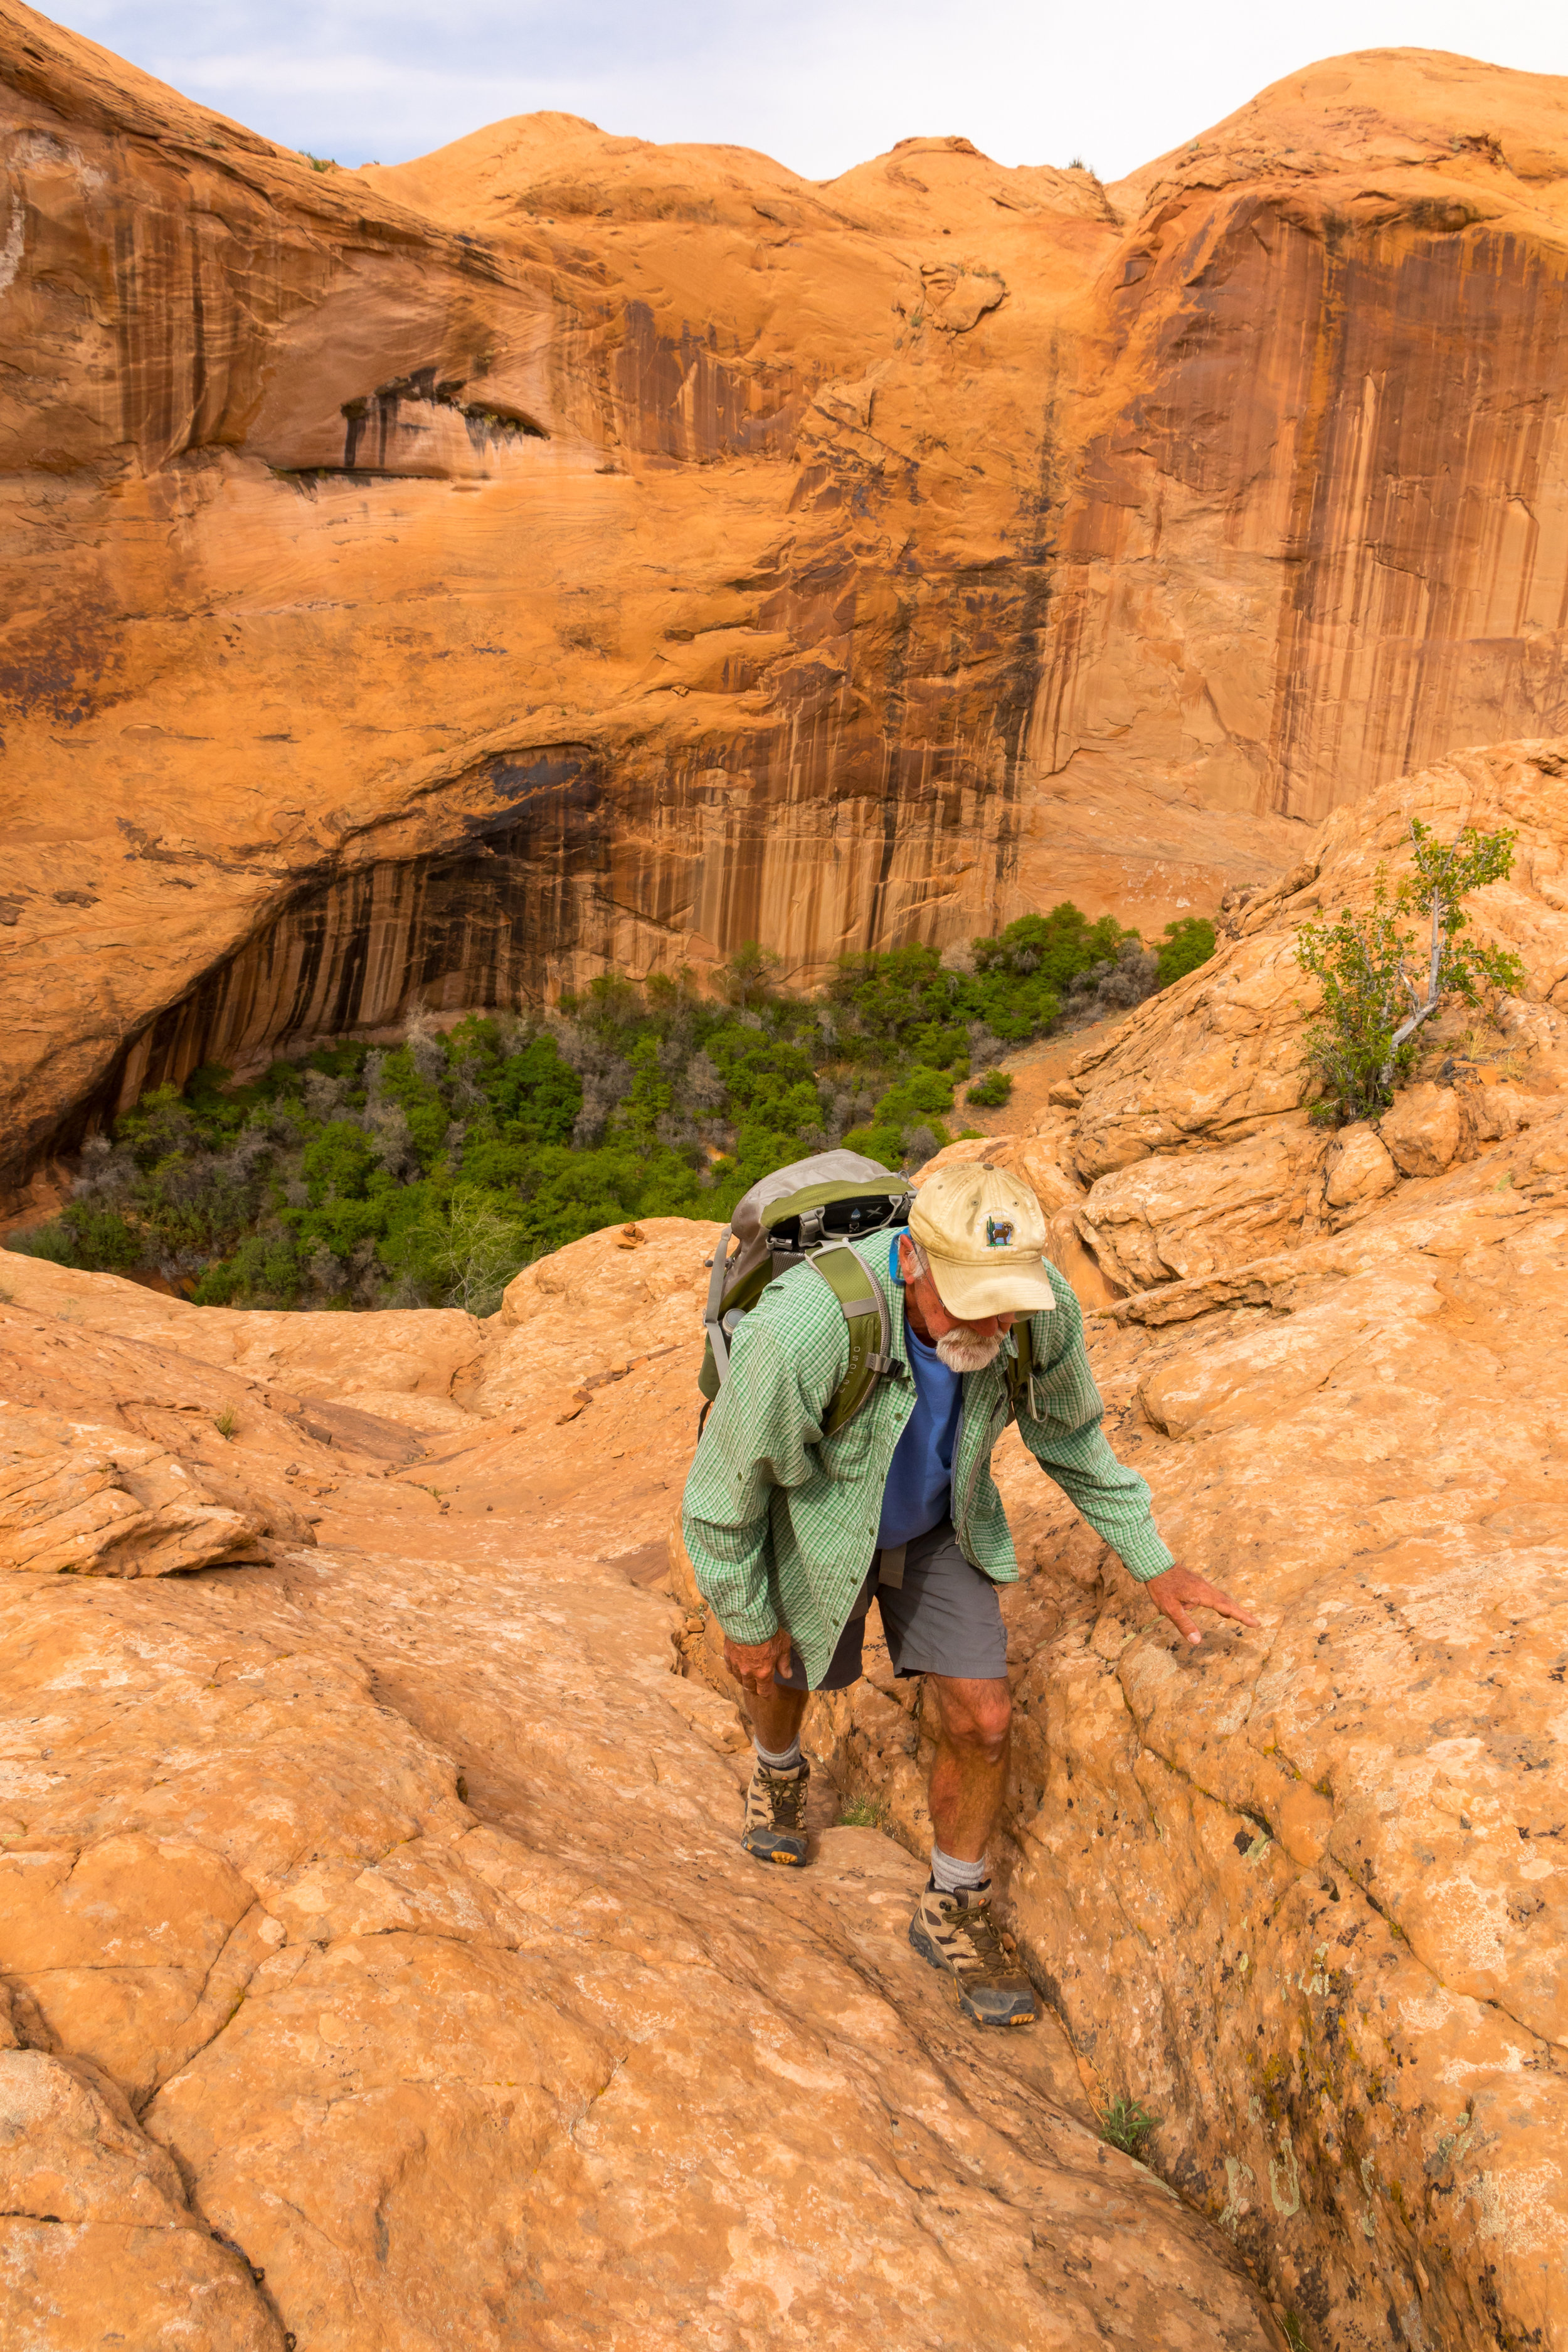 Coyote Gulch, Dave, Image # 1510